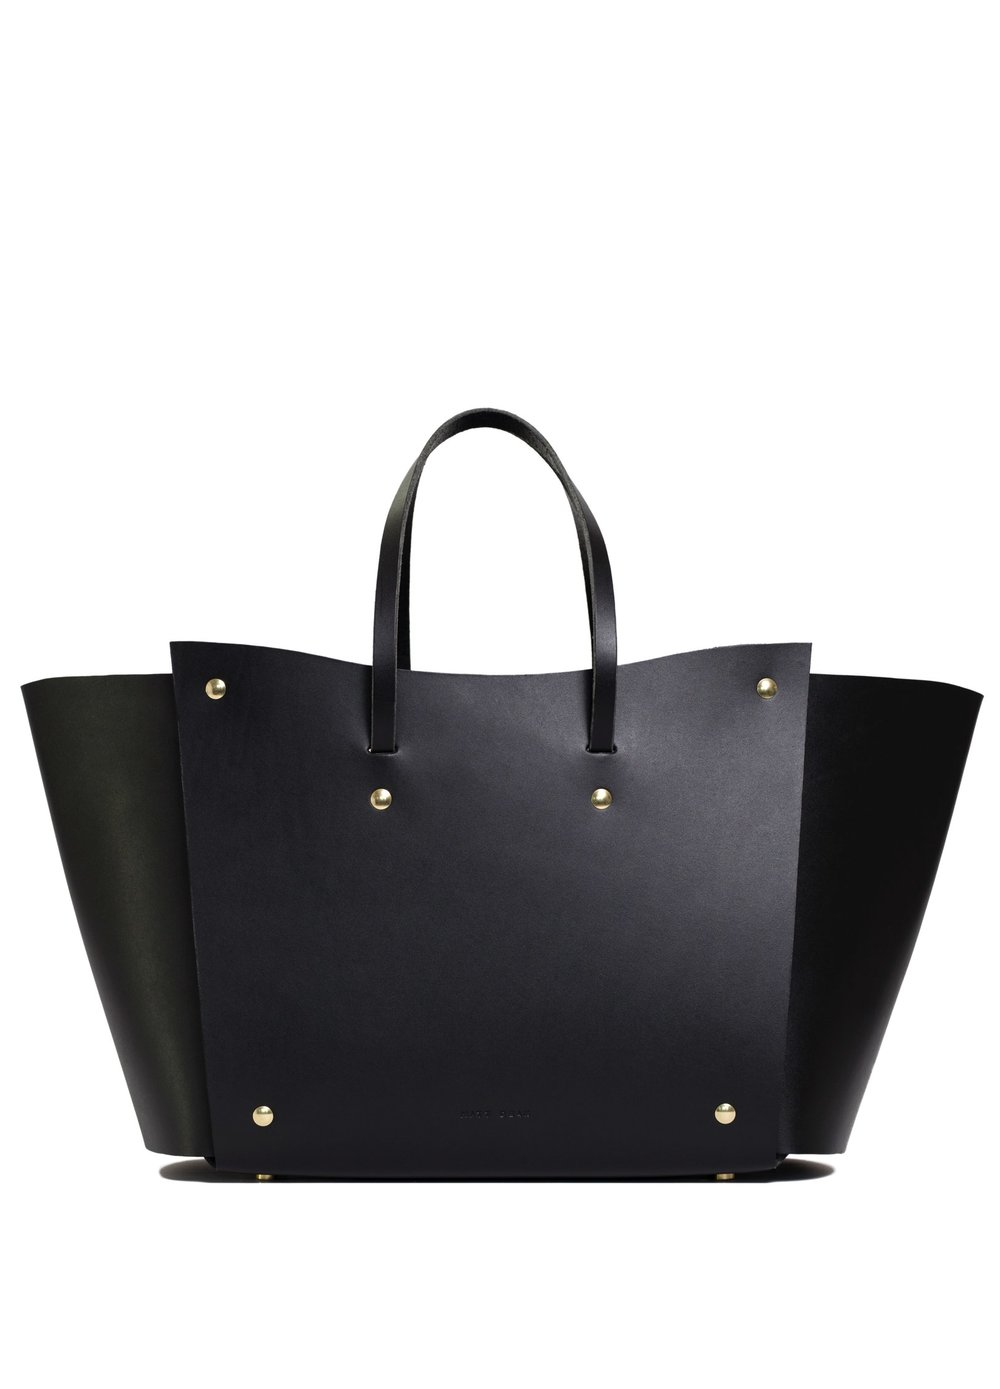 product-billow-black-front.jpg